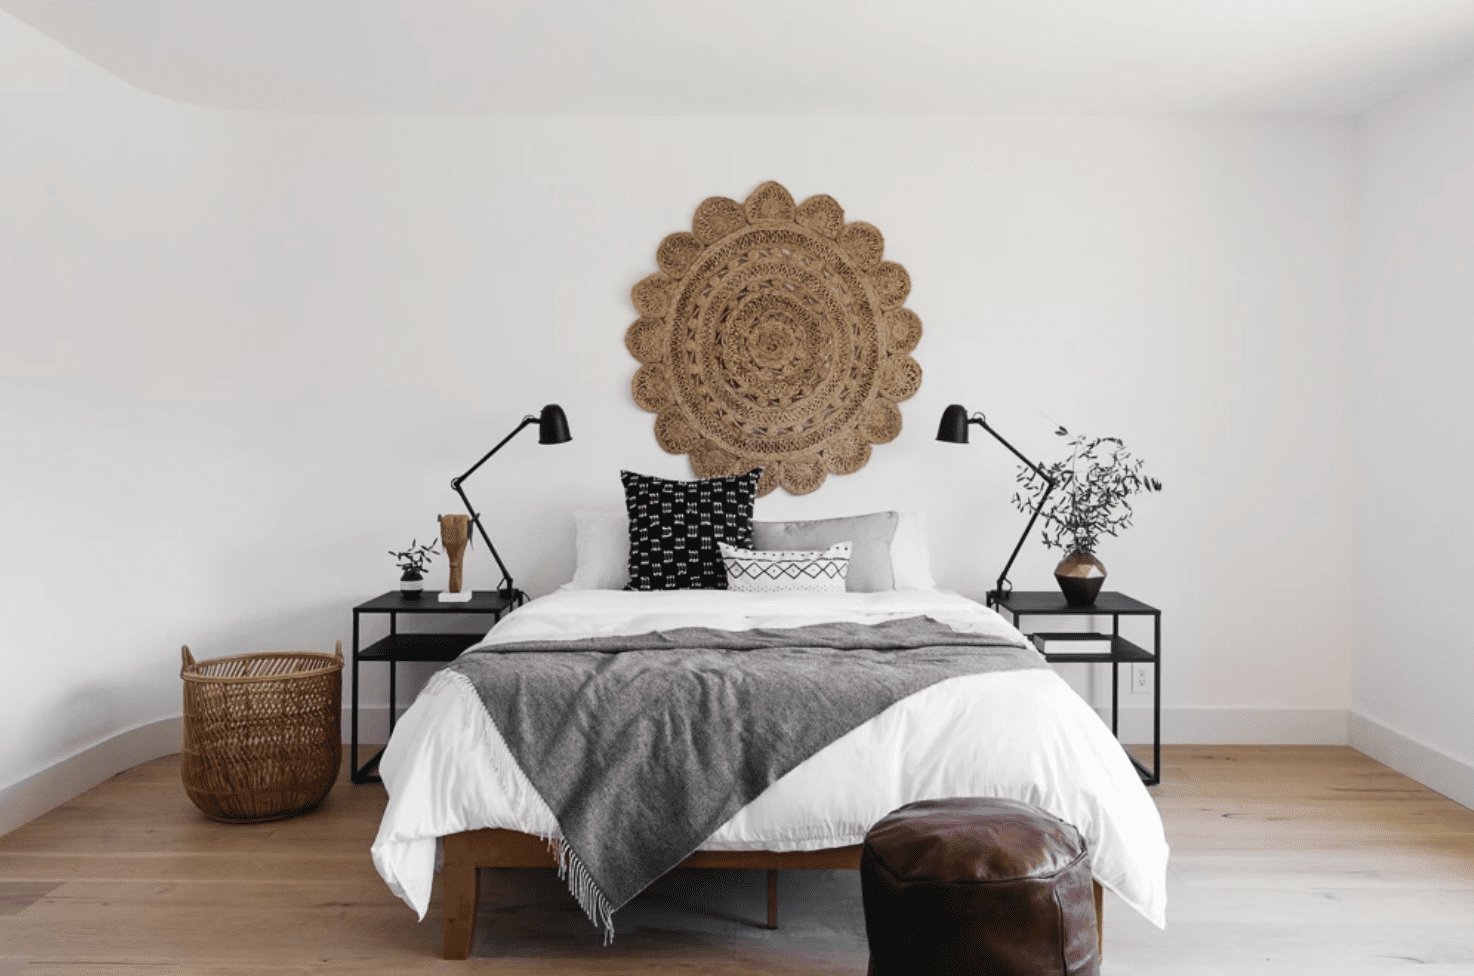 A bedroom with two nightstands and a woven basket